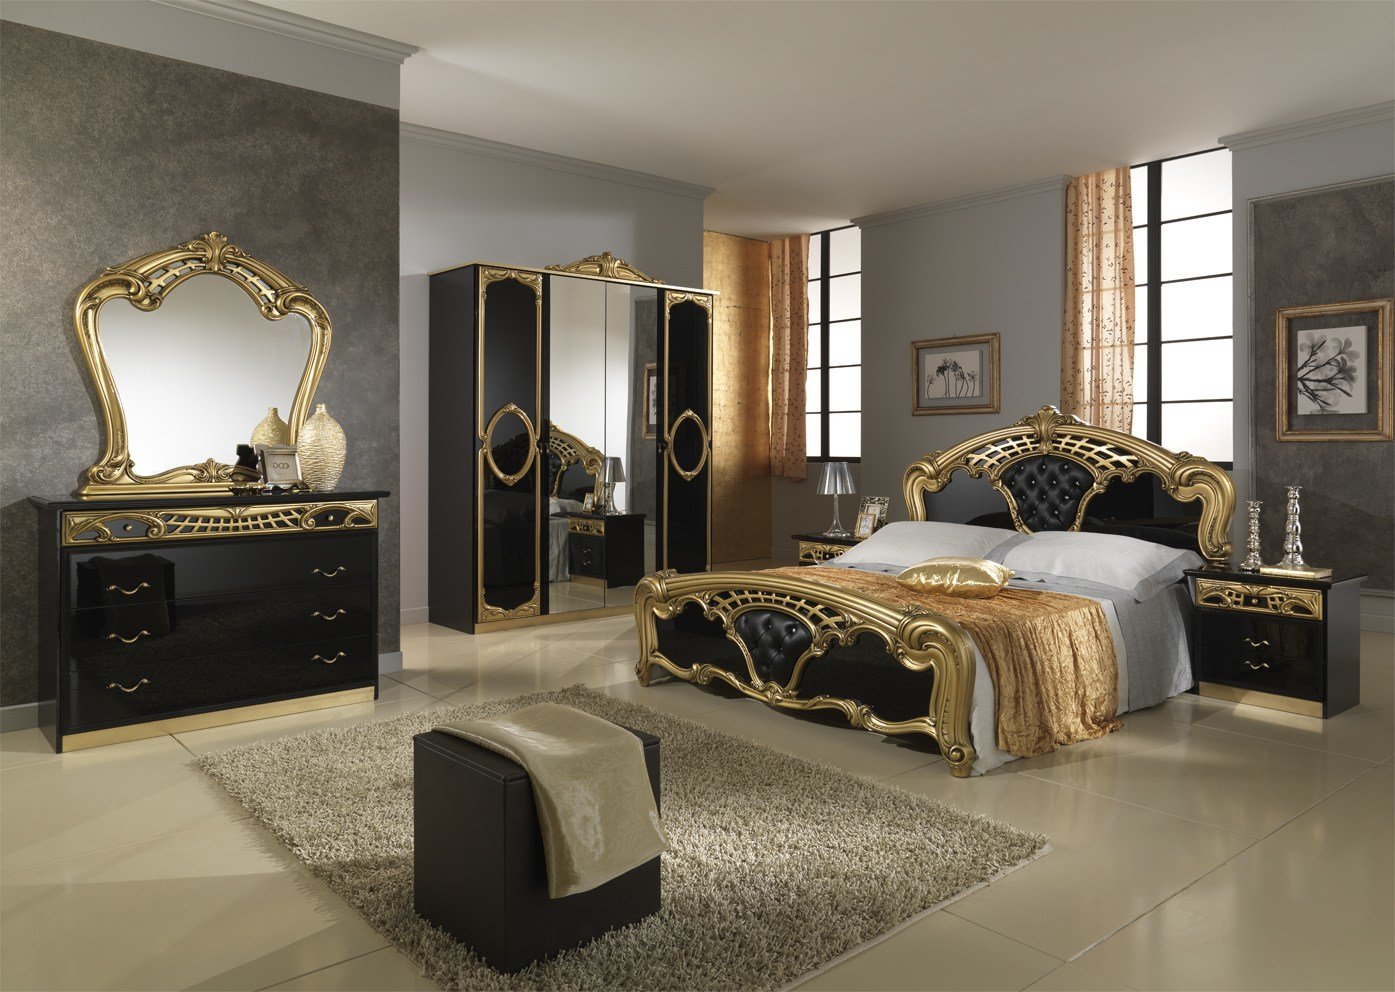 Best Wonderful Black And Gold Bedroom Ideas Atzine Com With Pictures